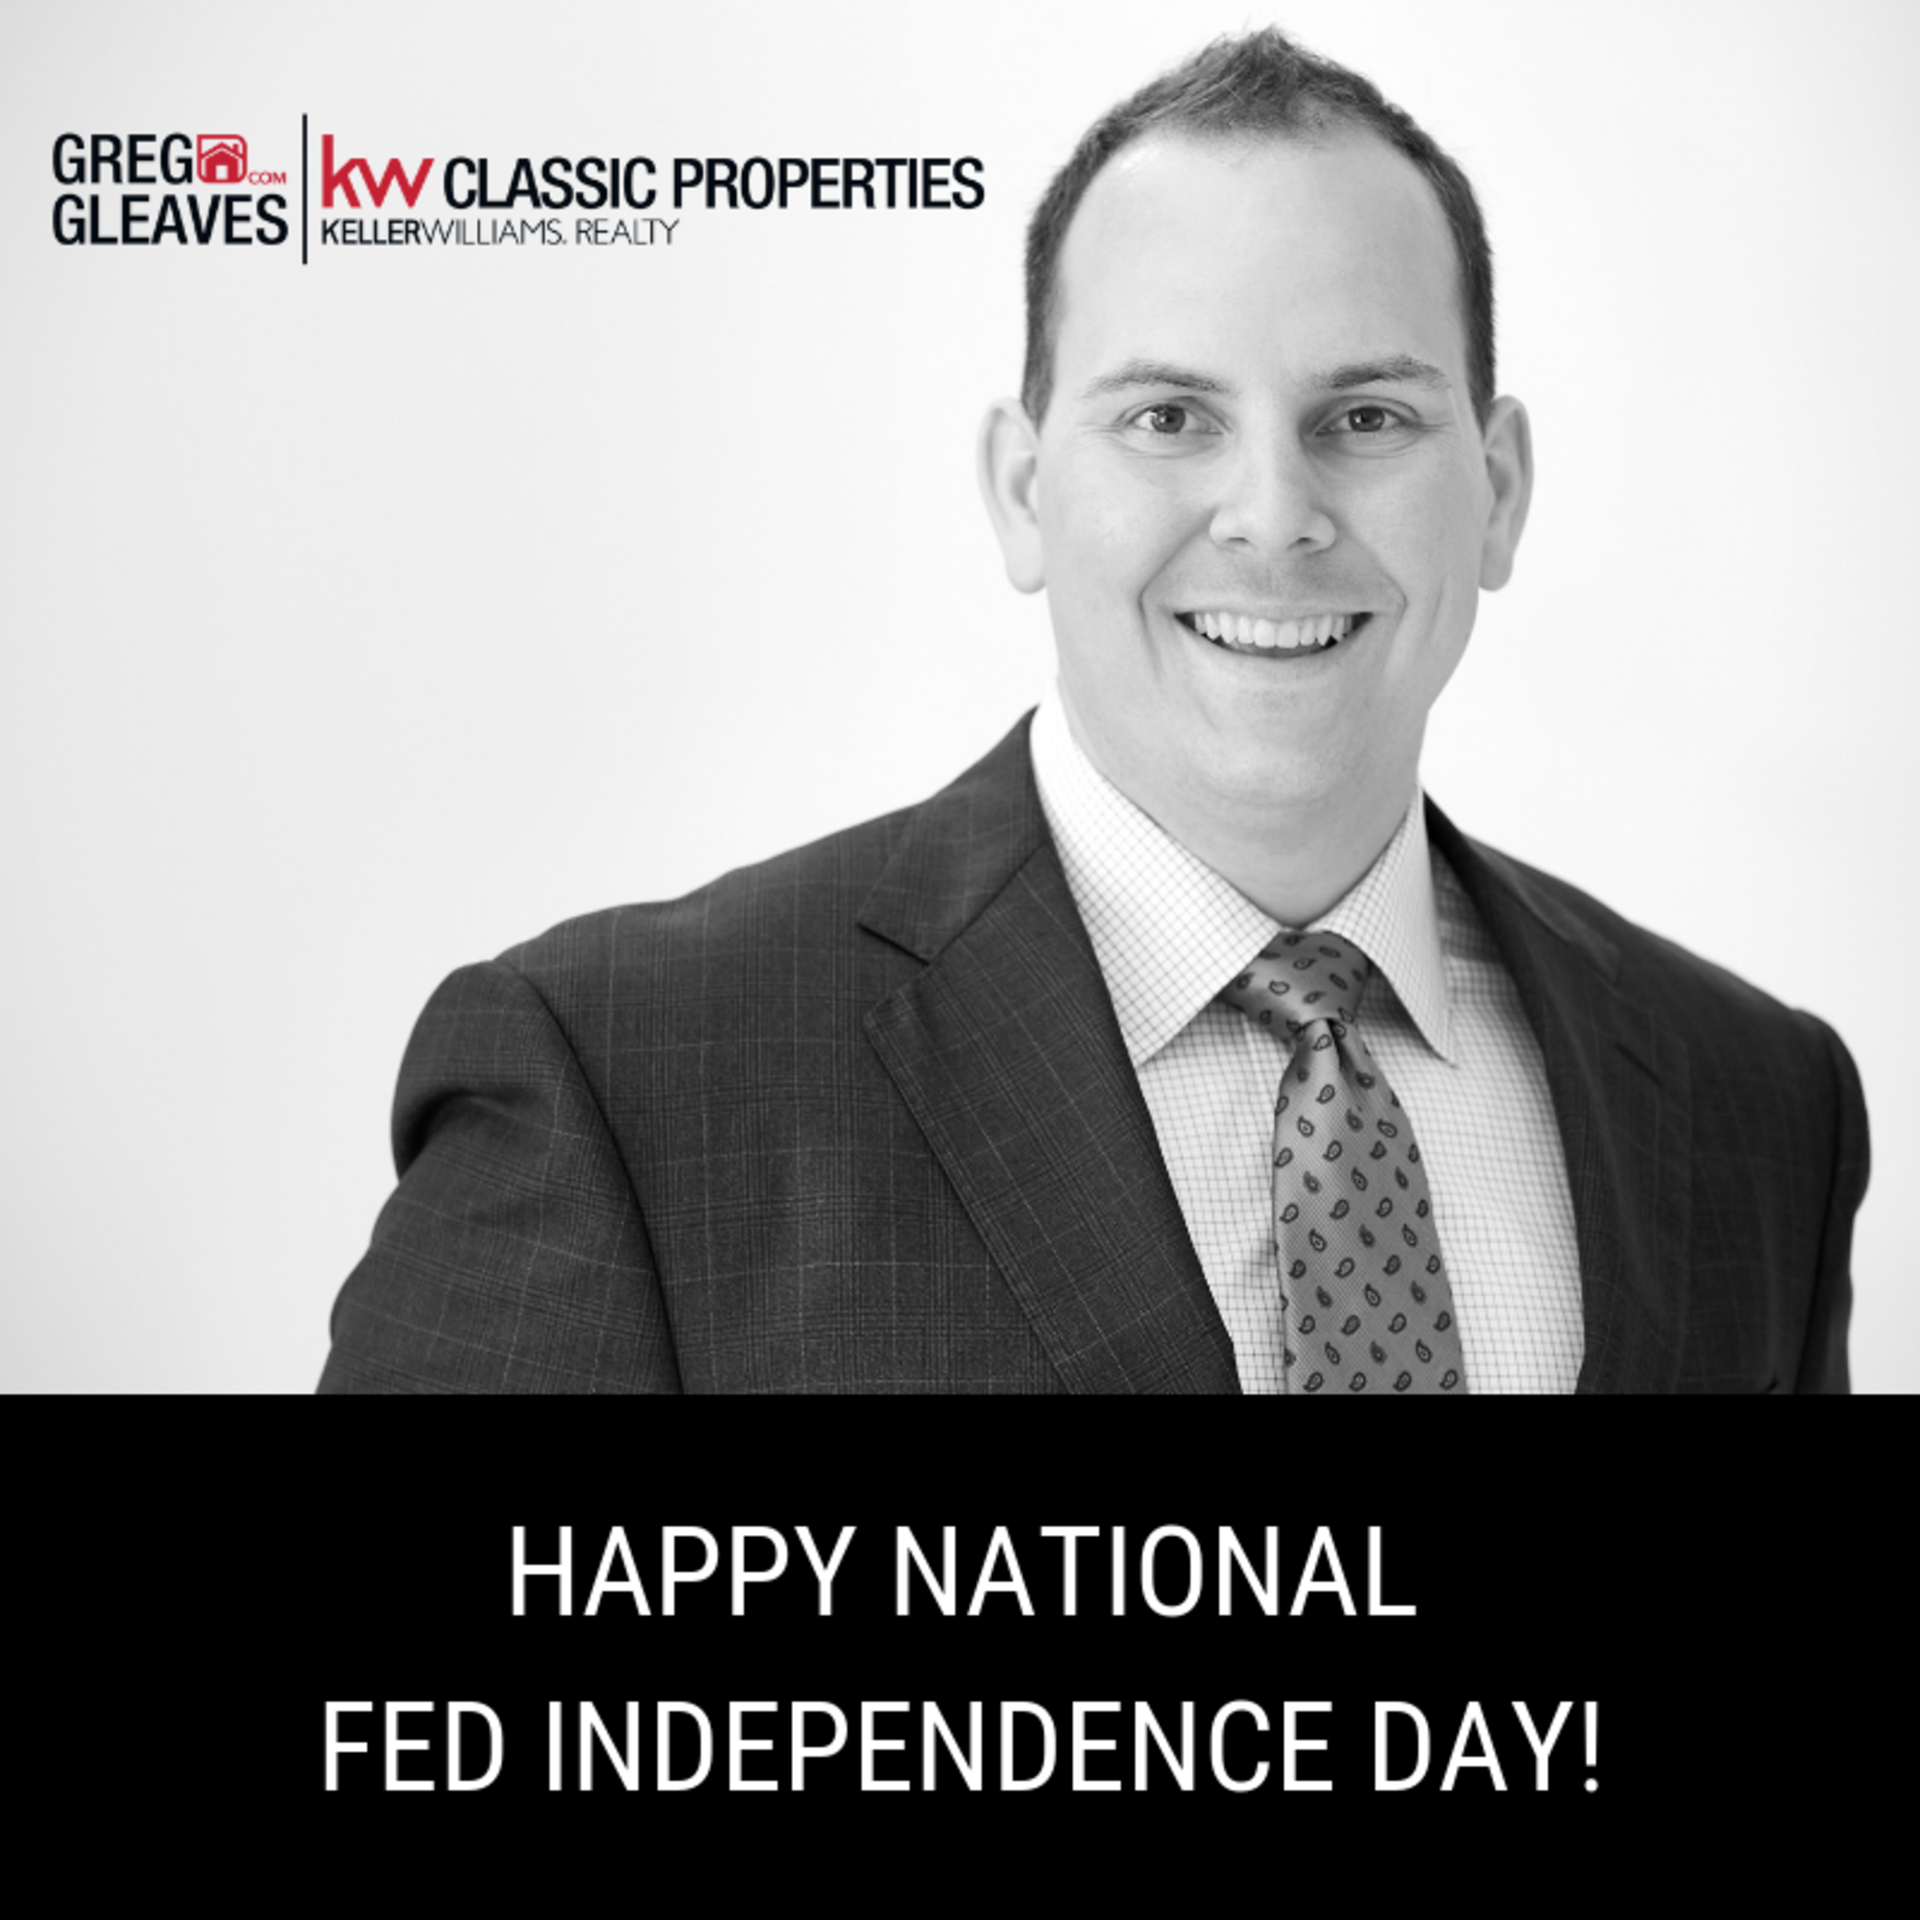 Happy National Fed Independence Day!